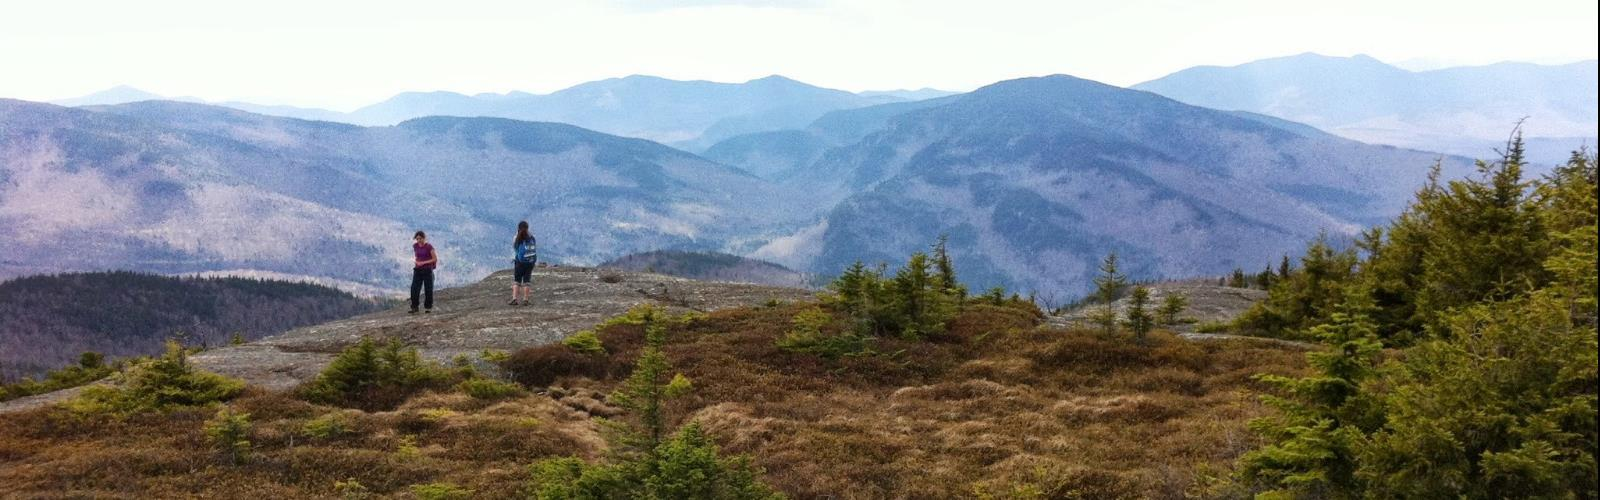 Clark Mountain, Maine - Hiking